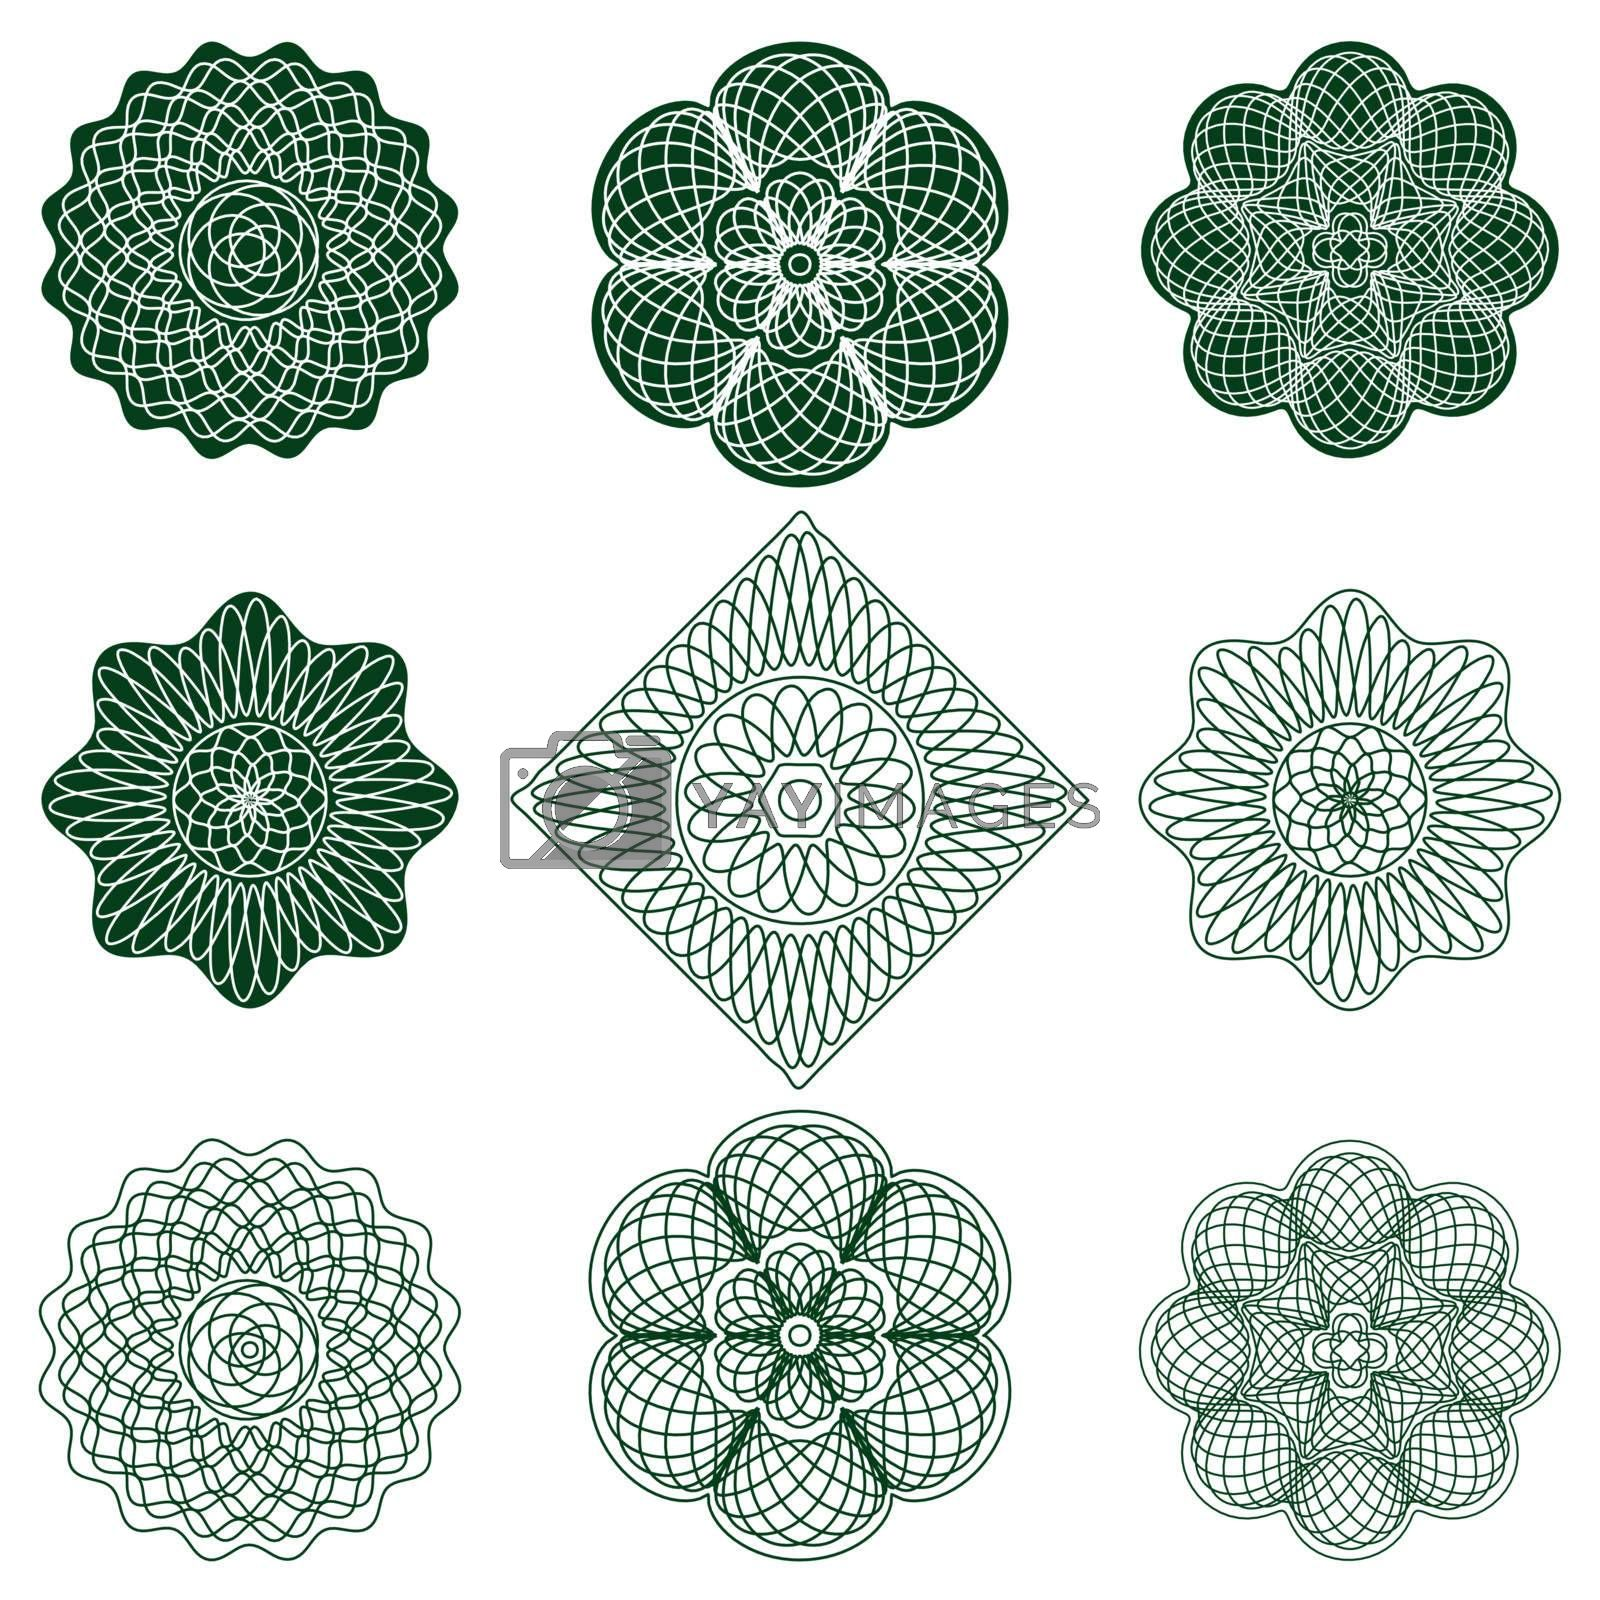 guilloche rosette, vector pattern for currency, certificate or diplomas